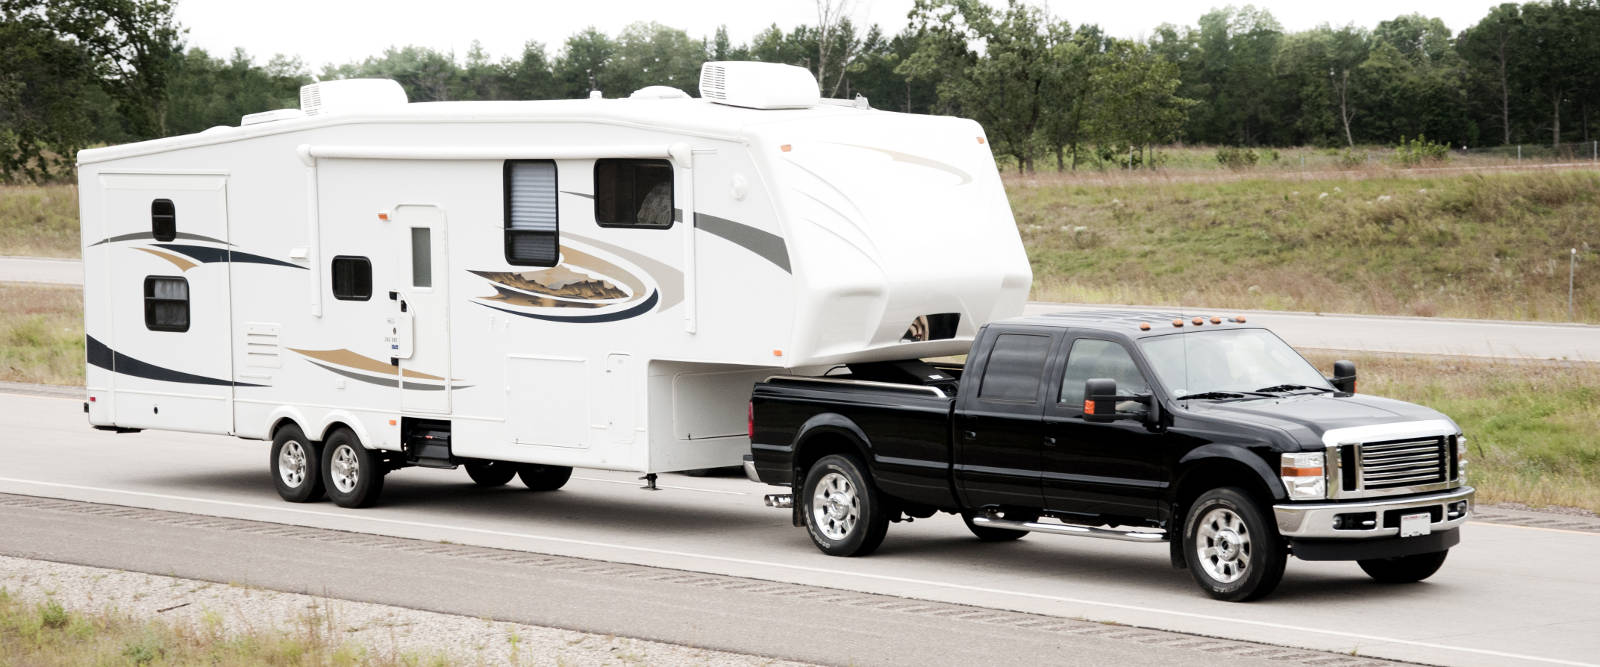 CURT 5th Wheel Truck Hitch Towing RV